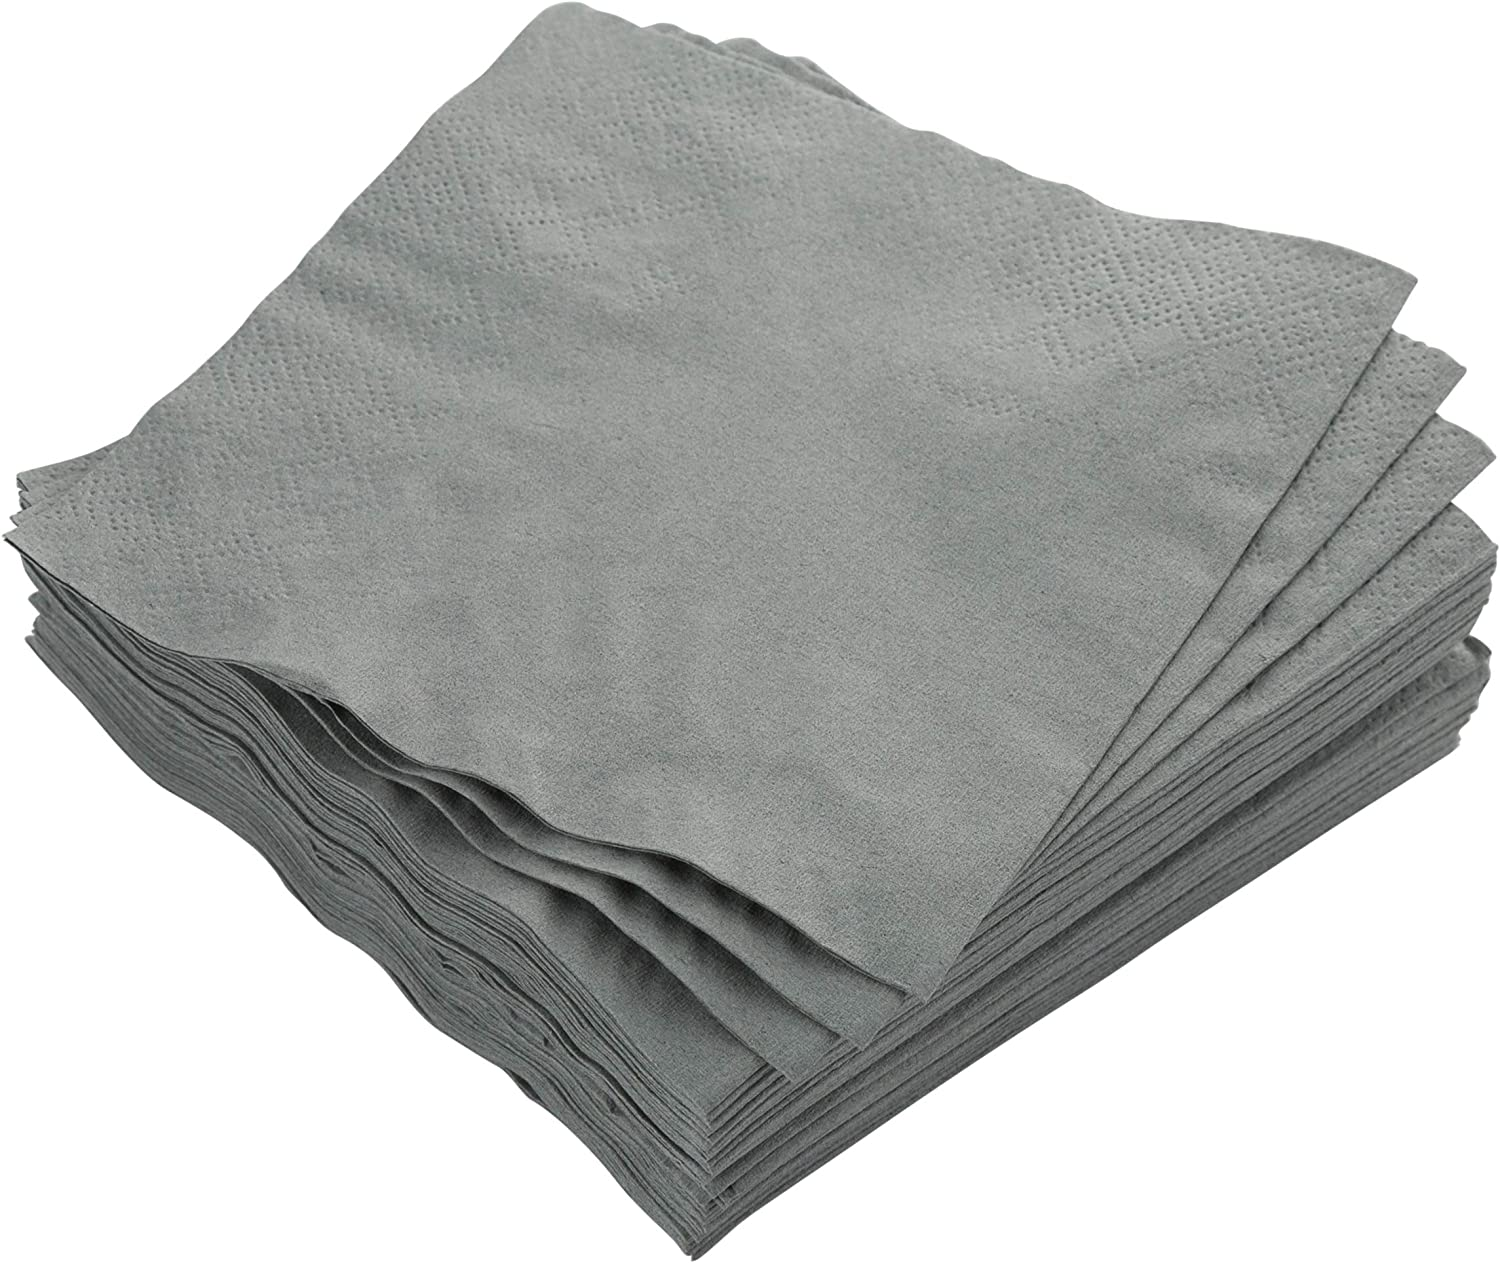 Exquisite 300 Pack of Beverage Paper Napkins The 2 Ply Party Napkins are Highly Absorbent and Available in a Wide Range of Vibrant Colors - Silver Napkins